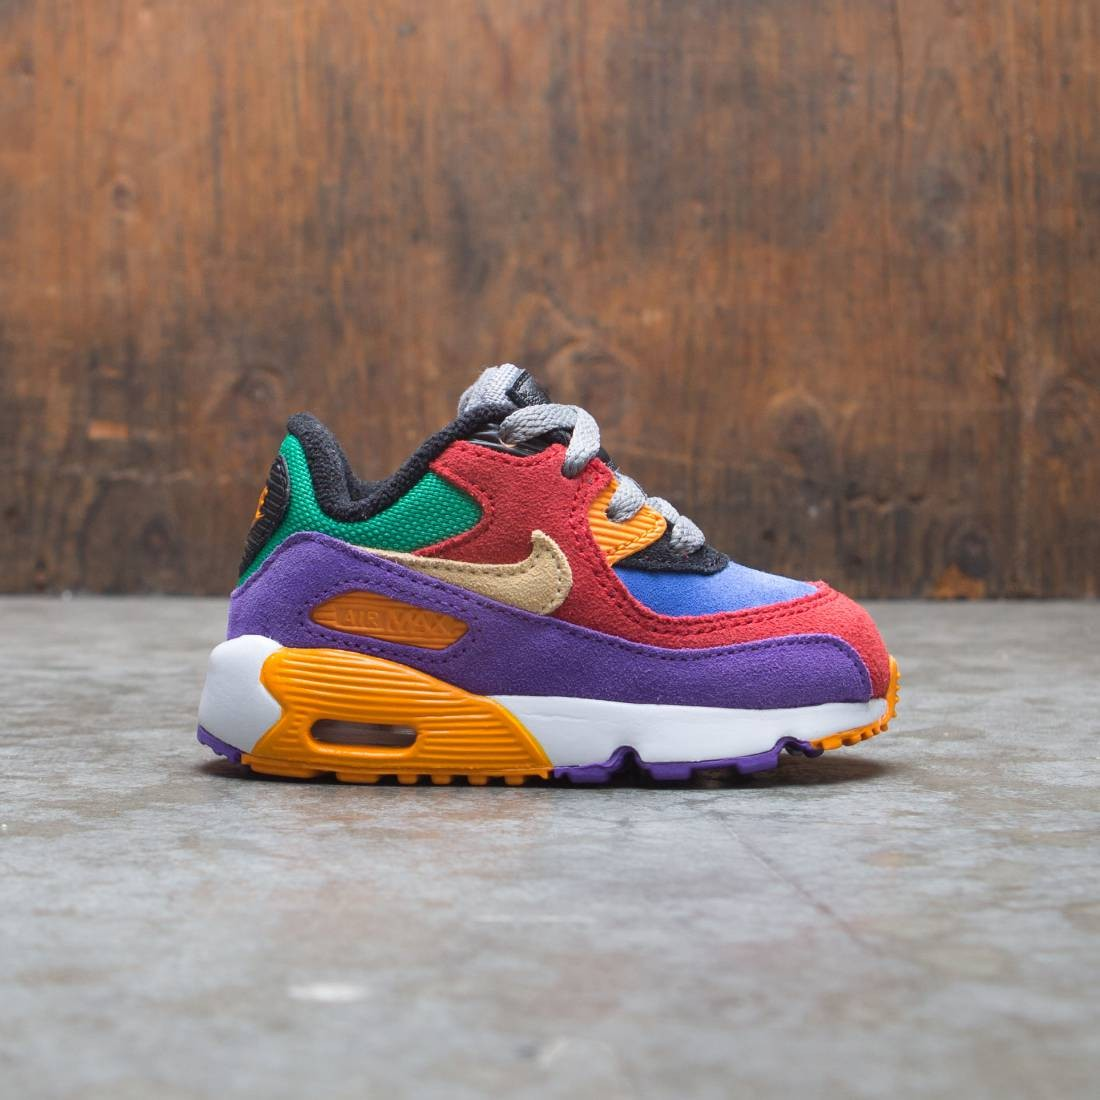 on sale 5e428 c5237 Nike Toddlers Air Max 90 Qs (university red / pale vanilla-hyper grape)